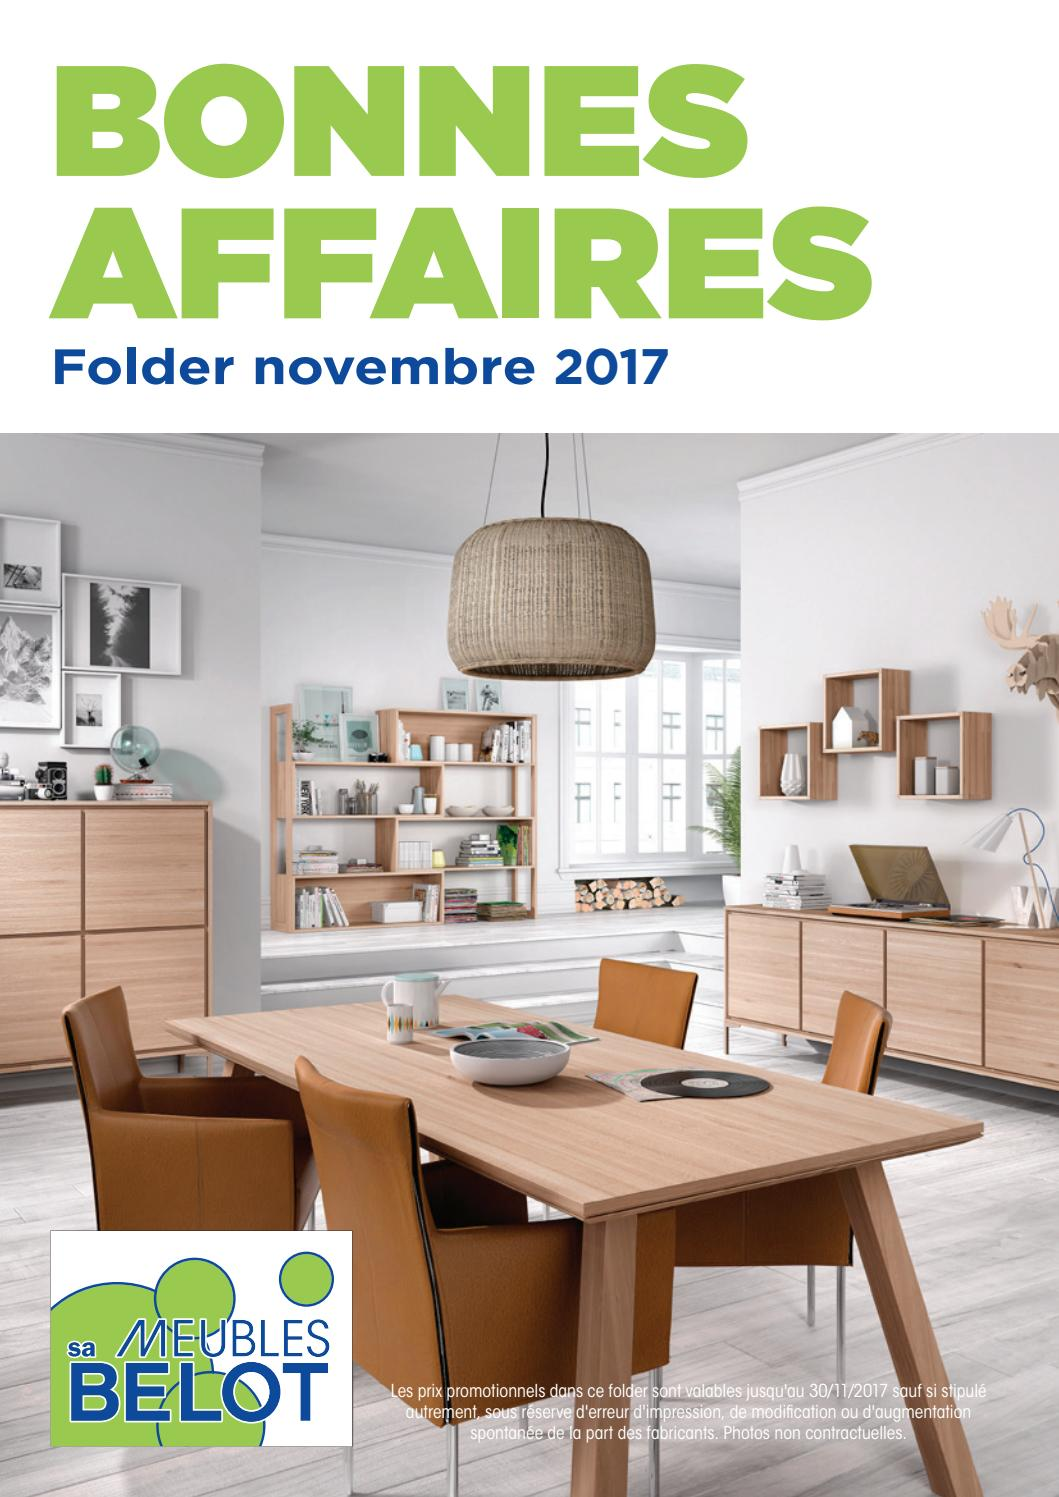 Pub Meubles Belot Belot Folder Bonnes Affaire Novembre 2017 By Meubles Belot Sa